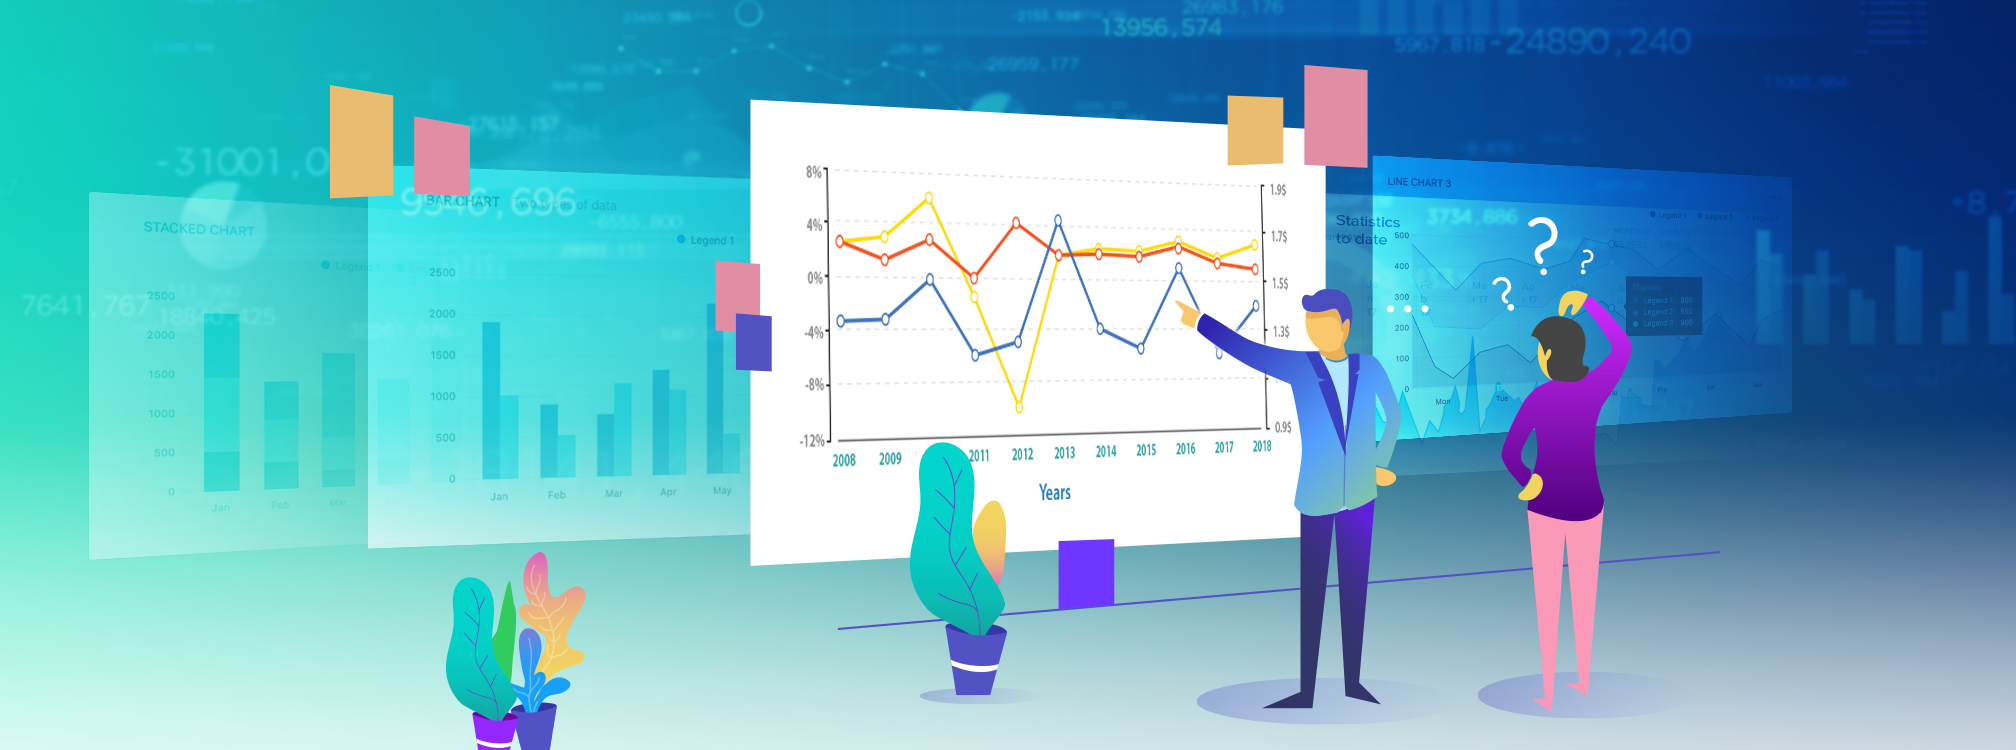 How to Choose the Right Charting Component for Your Application